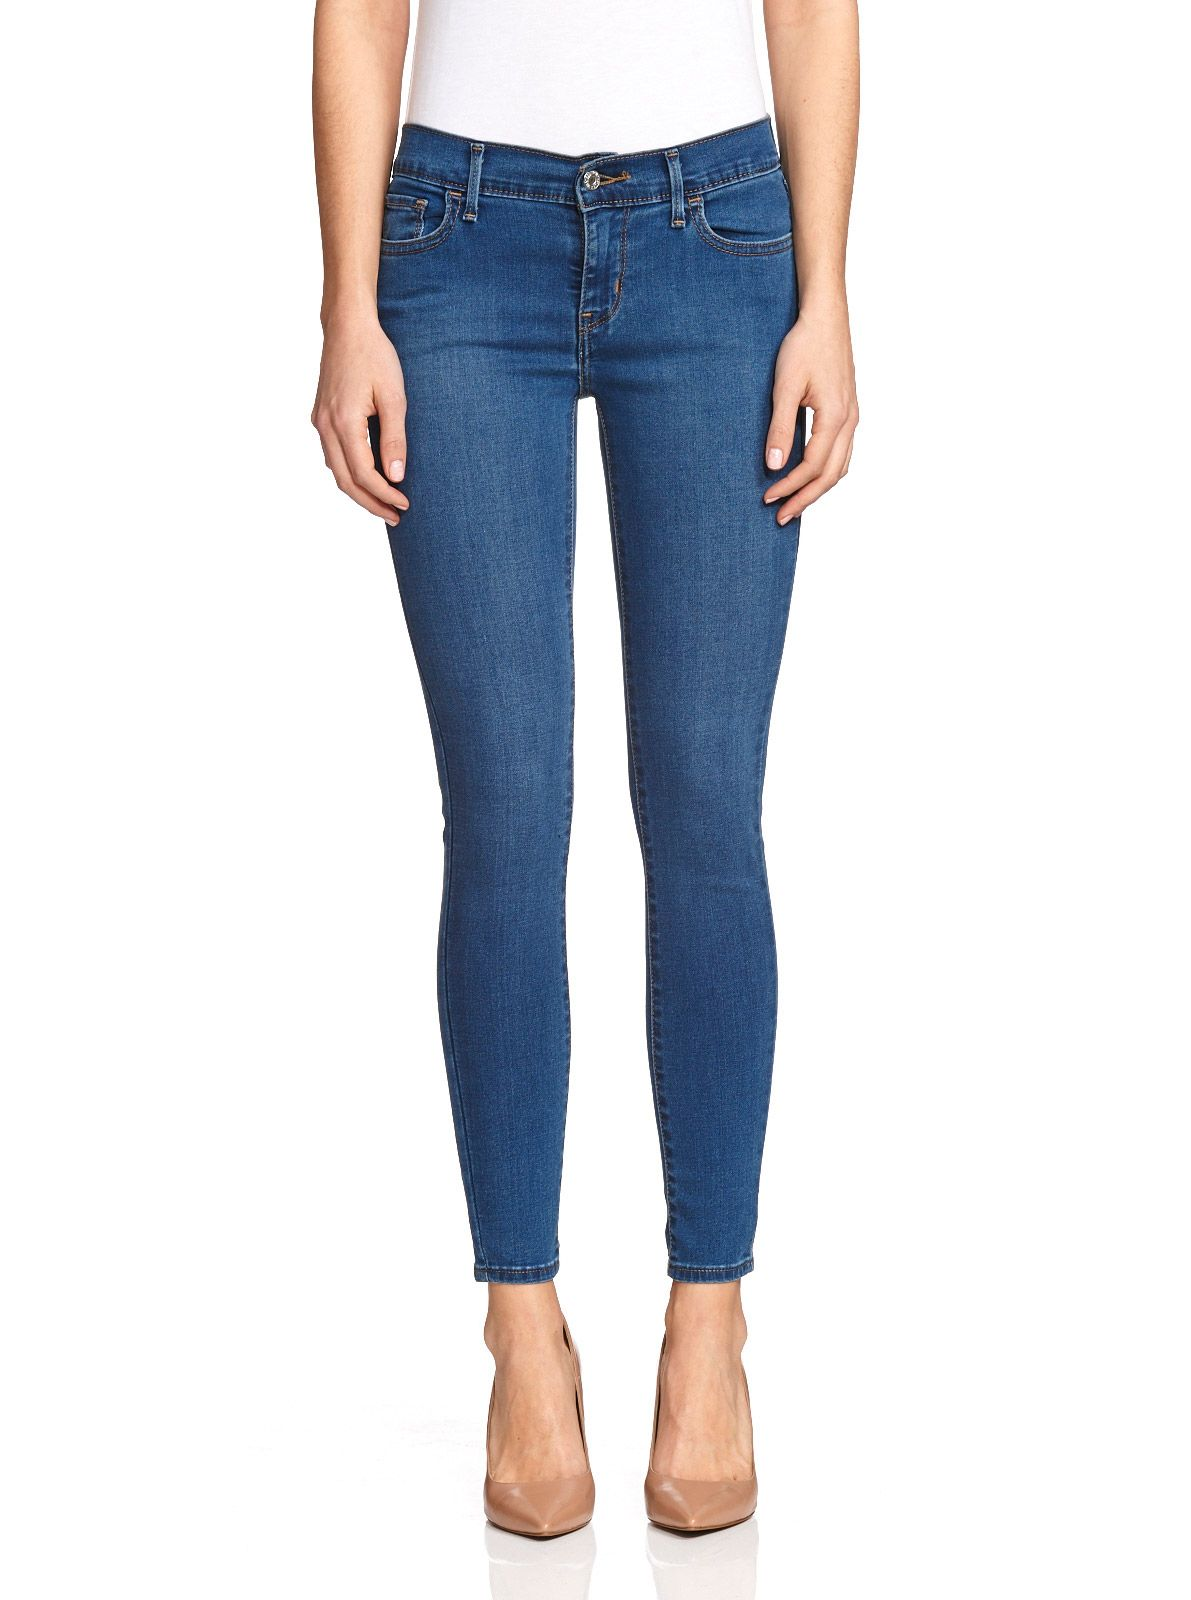 Levi's empire cropped skinny jeans